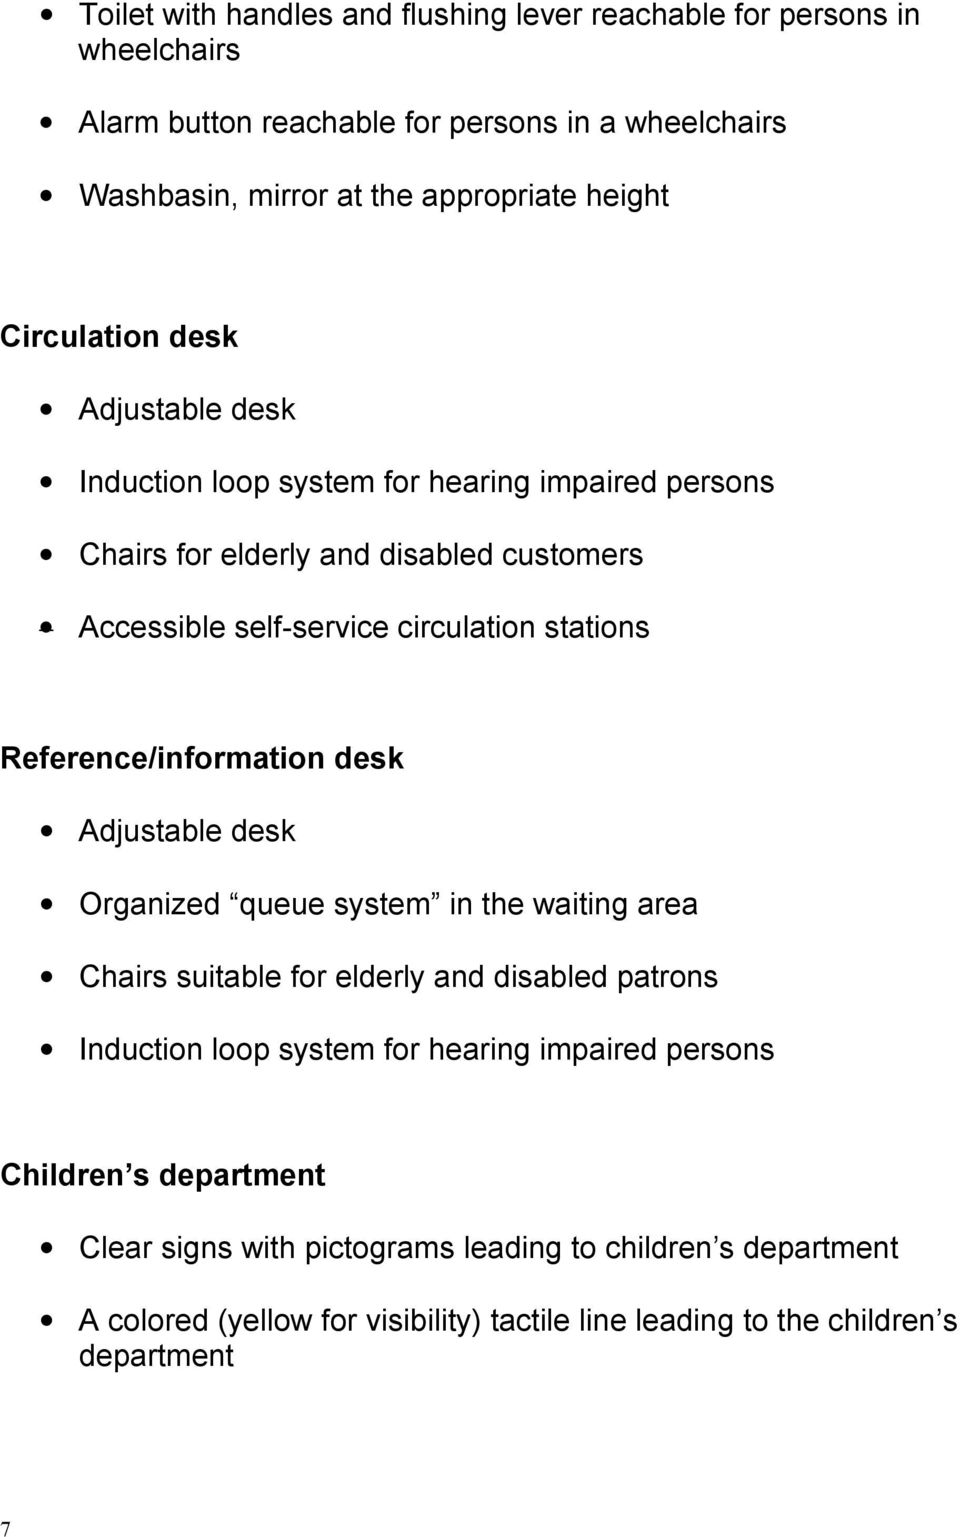 Reference/information desk Adjustable desk Organized queue system in the waiting area Chairs suitable for elderly and disabled patrons Induction loop system for hearing